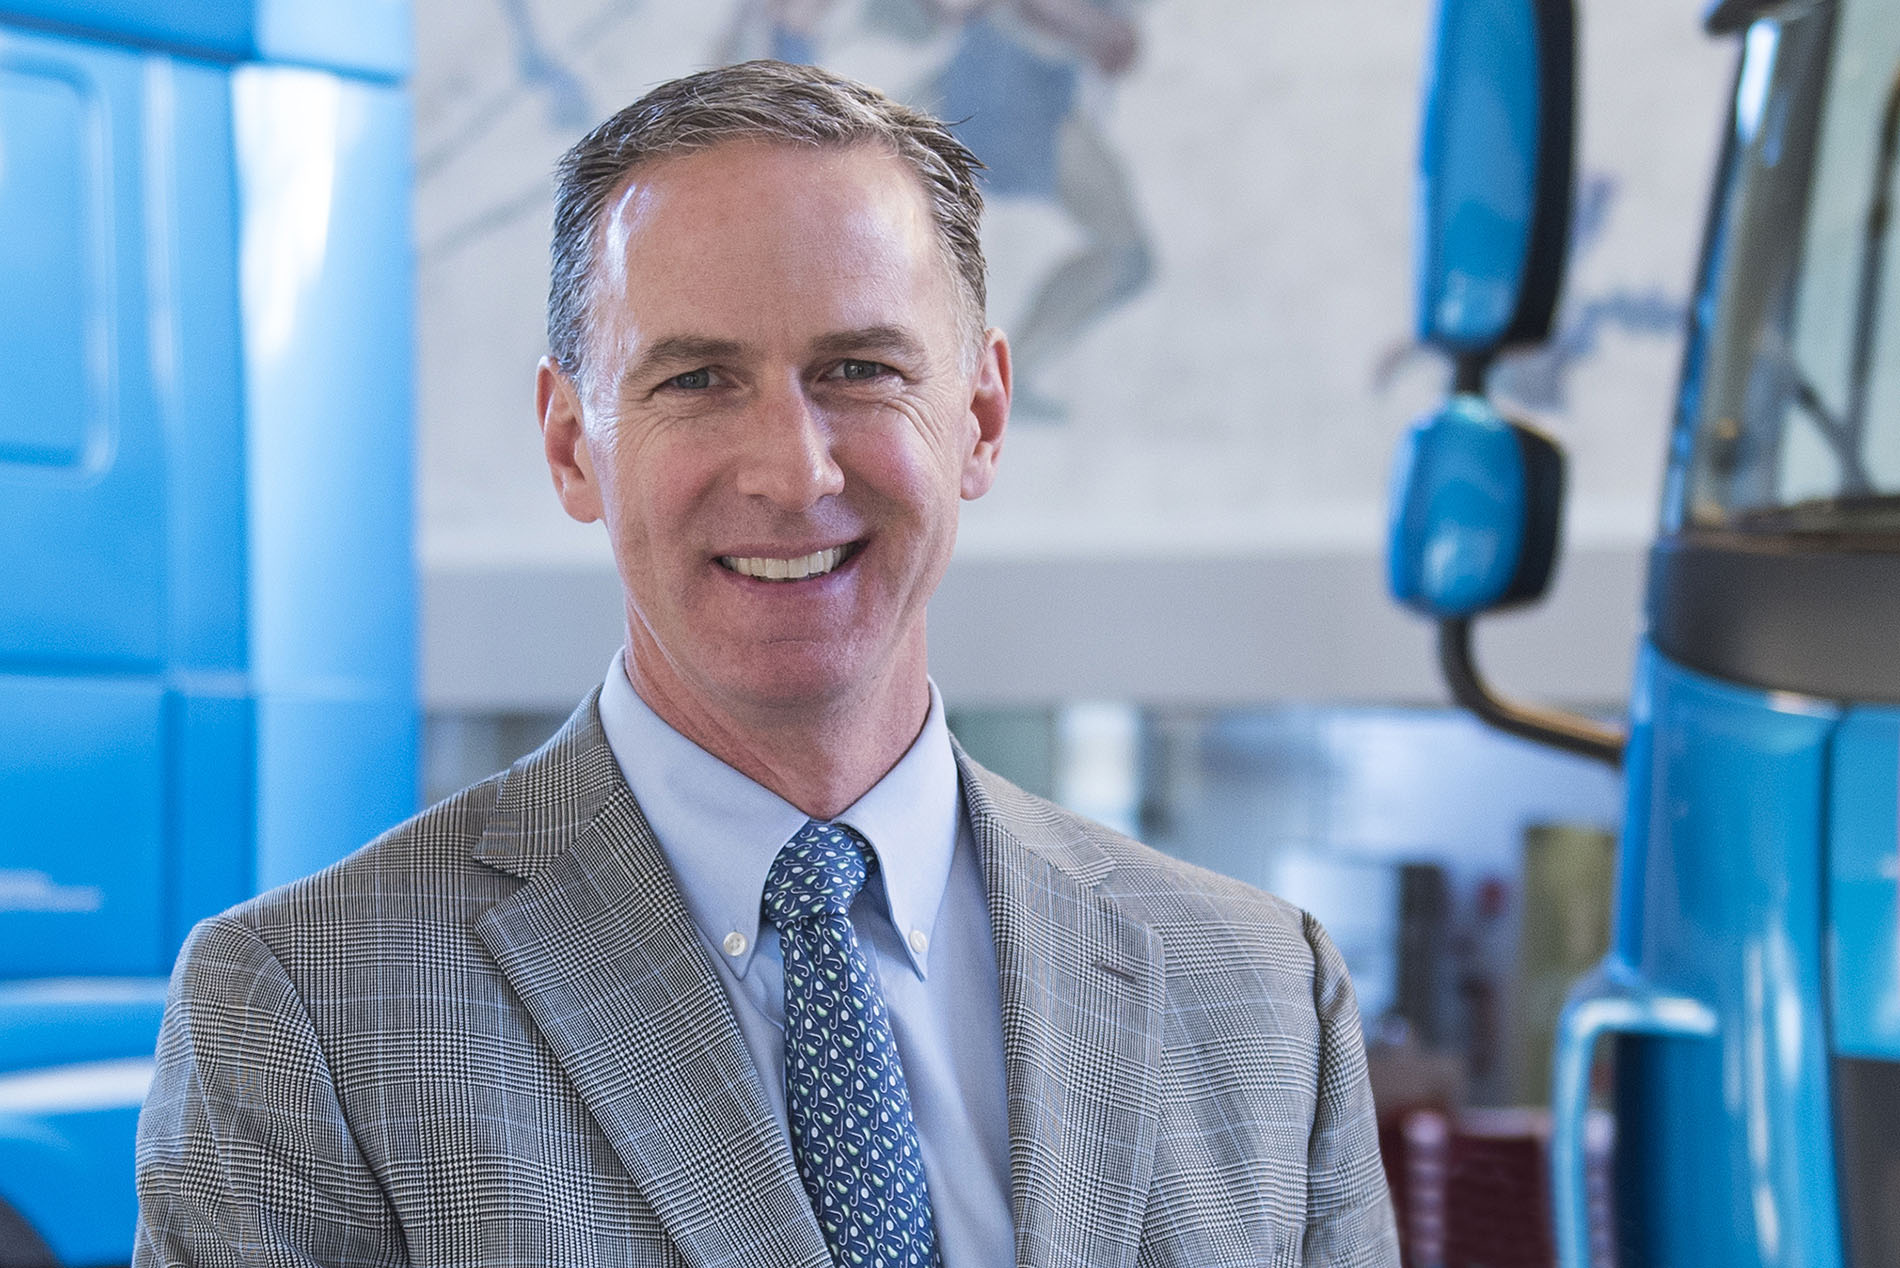 Preston Feight has been promoted to PACCAR Executive Vice President